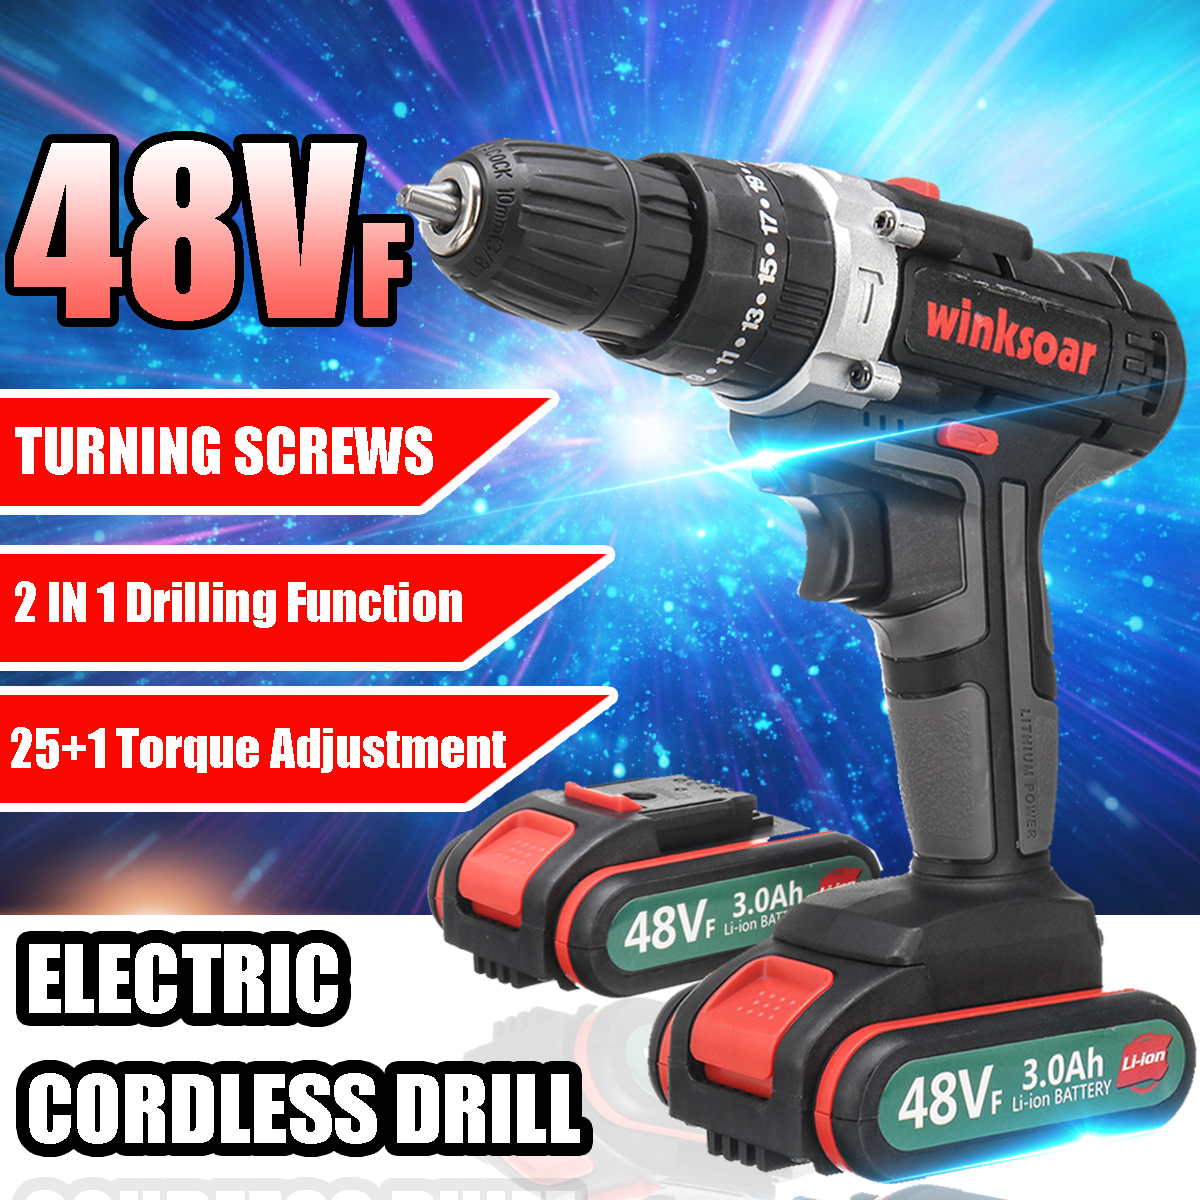 48VF Cordless Brushless Electric Screwdriver Impact Drill 2-Speed 25+1 Torque Rechargeable Li-ion Battery Power Tools Waterproof48VF Cordless Brushless Electric Screwdriver Impact Drill 2-Speed 25+1 Torque Rechargeable Li-ion Battery Power Tools Waterproof